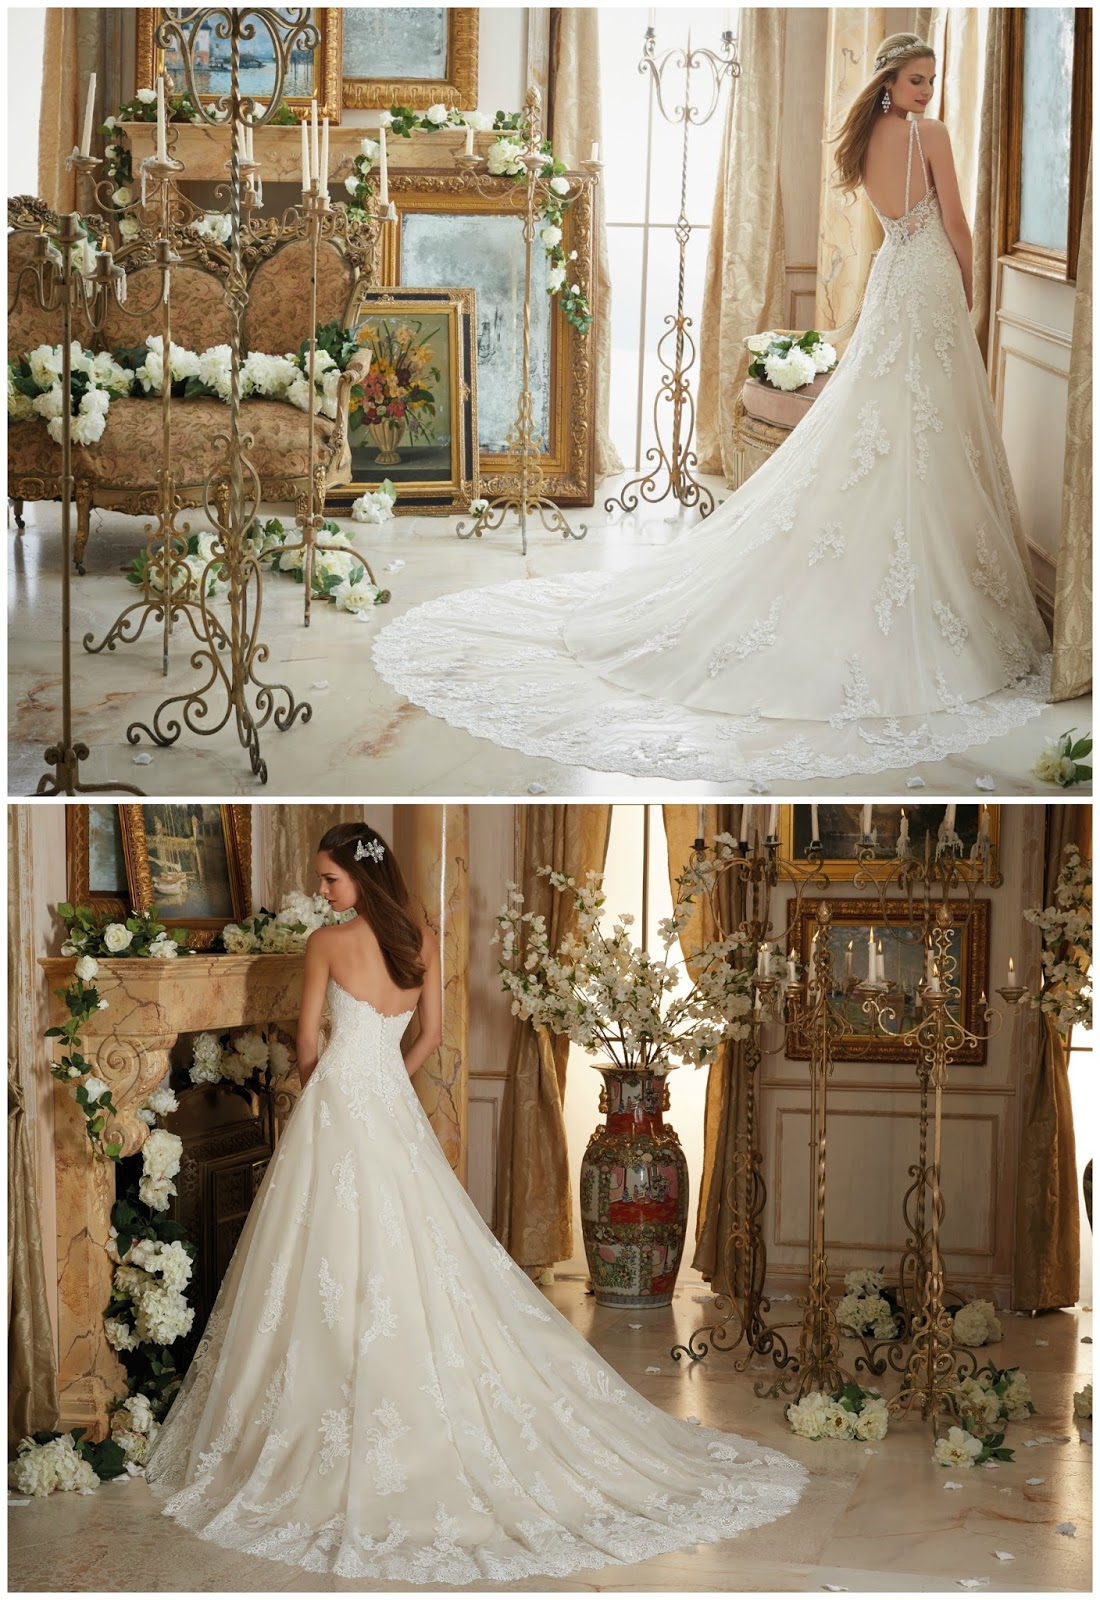 Brides of america online store preview the wedding for Miami wedding dresses stores